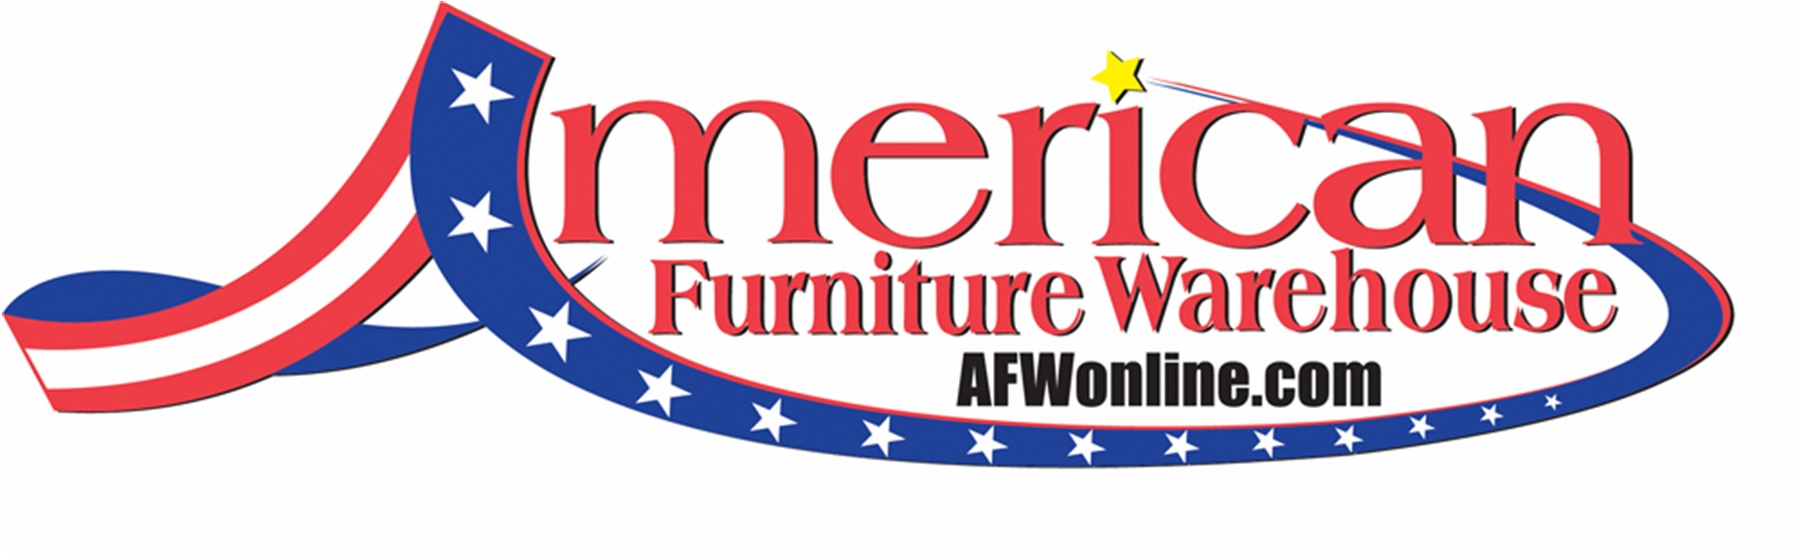 american furniture warehouse credit card payment login address customer service